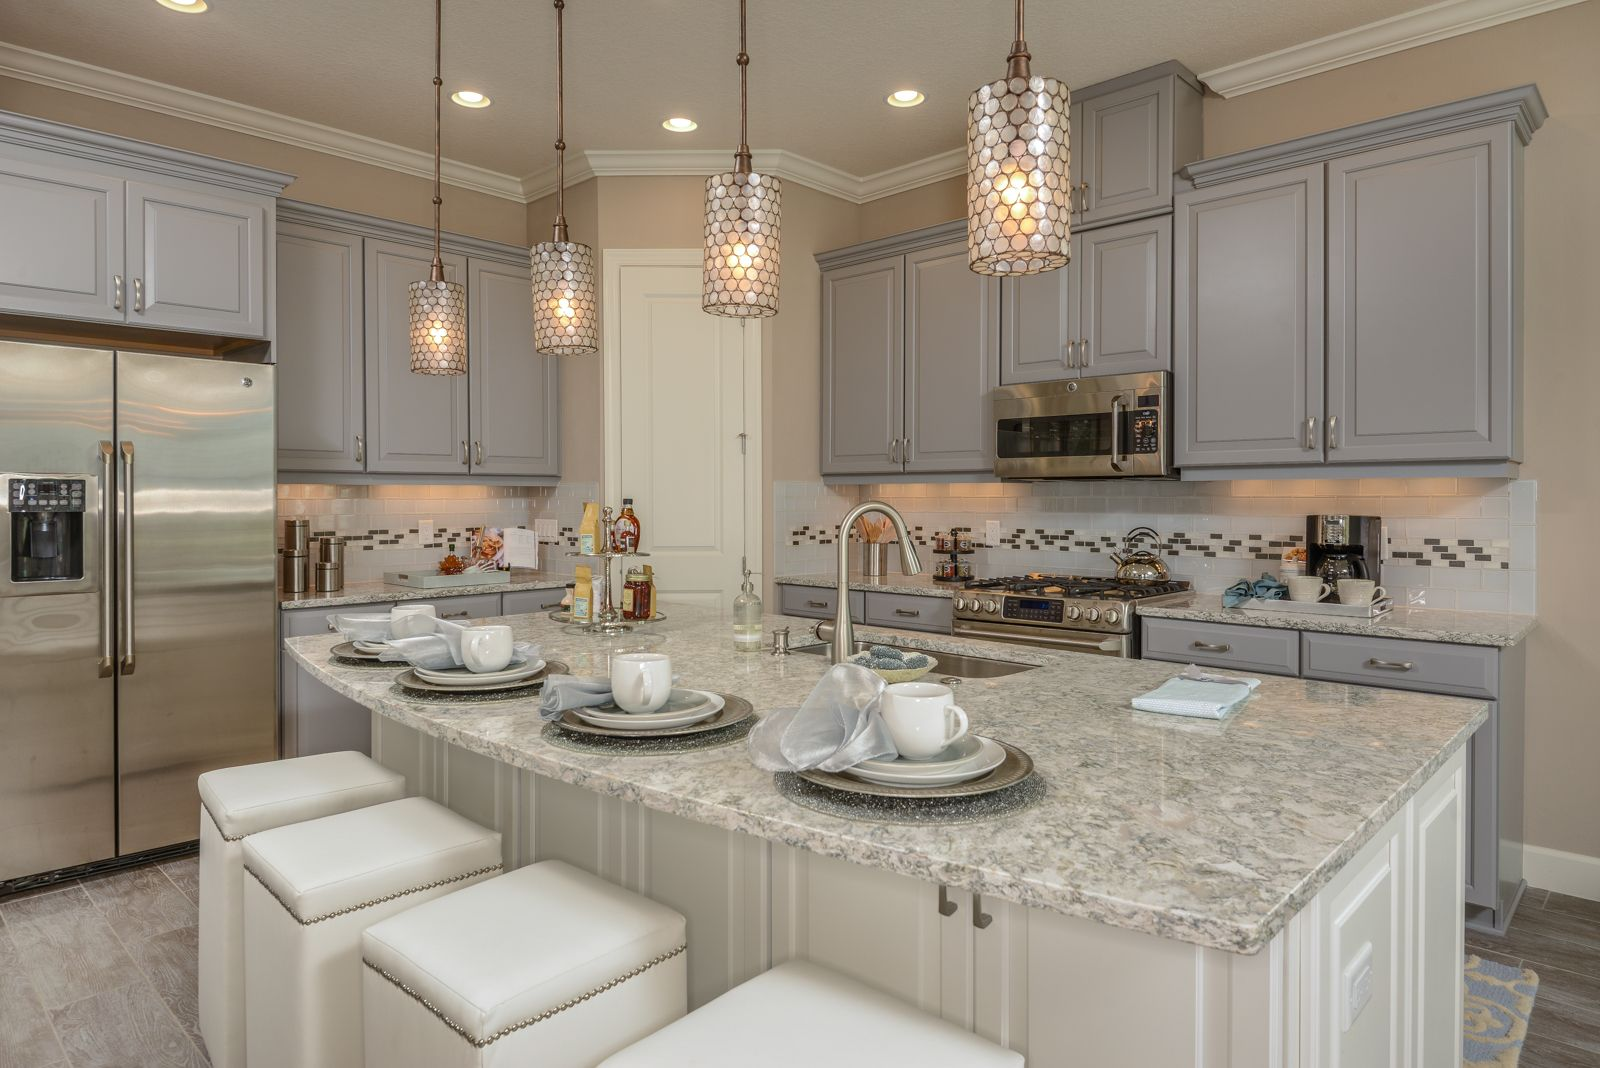 Esplanade Golf Country Club At Lakewood Ranch Newhome Design Dreamhome Luxuryhomes Elegant Living Insta Hacienda Lakewood Ranch Kitchen Cabinet Colors